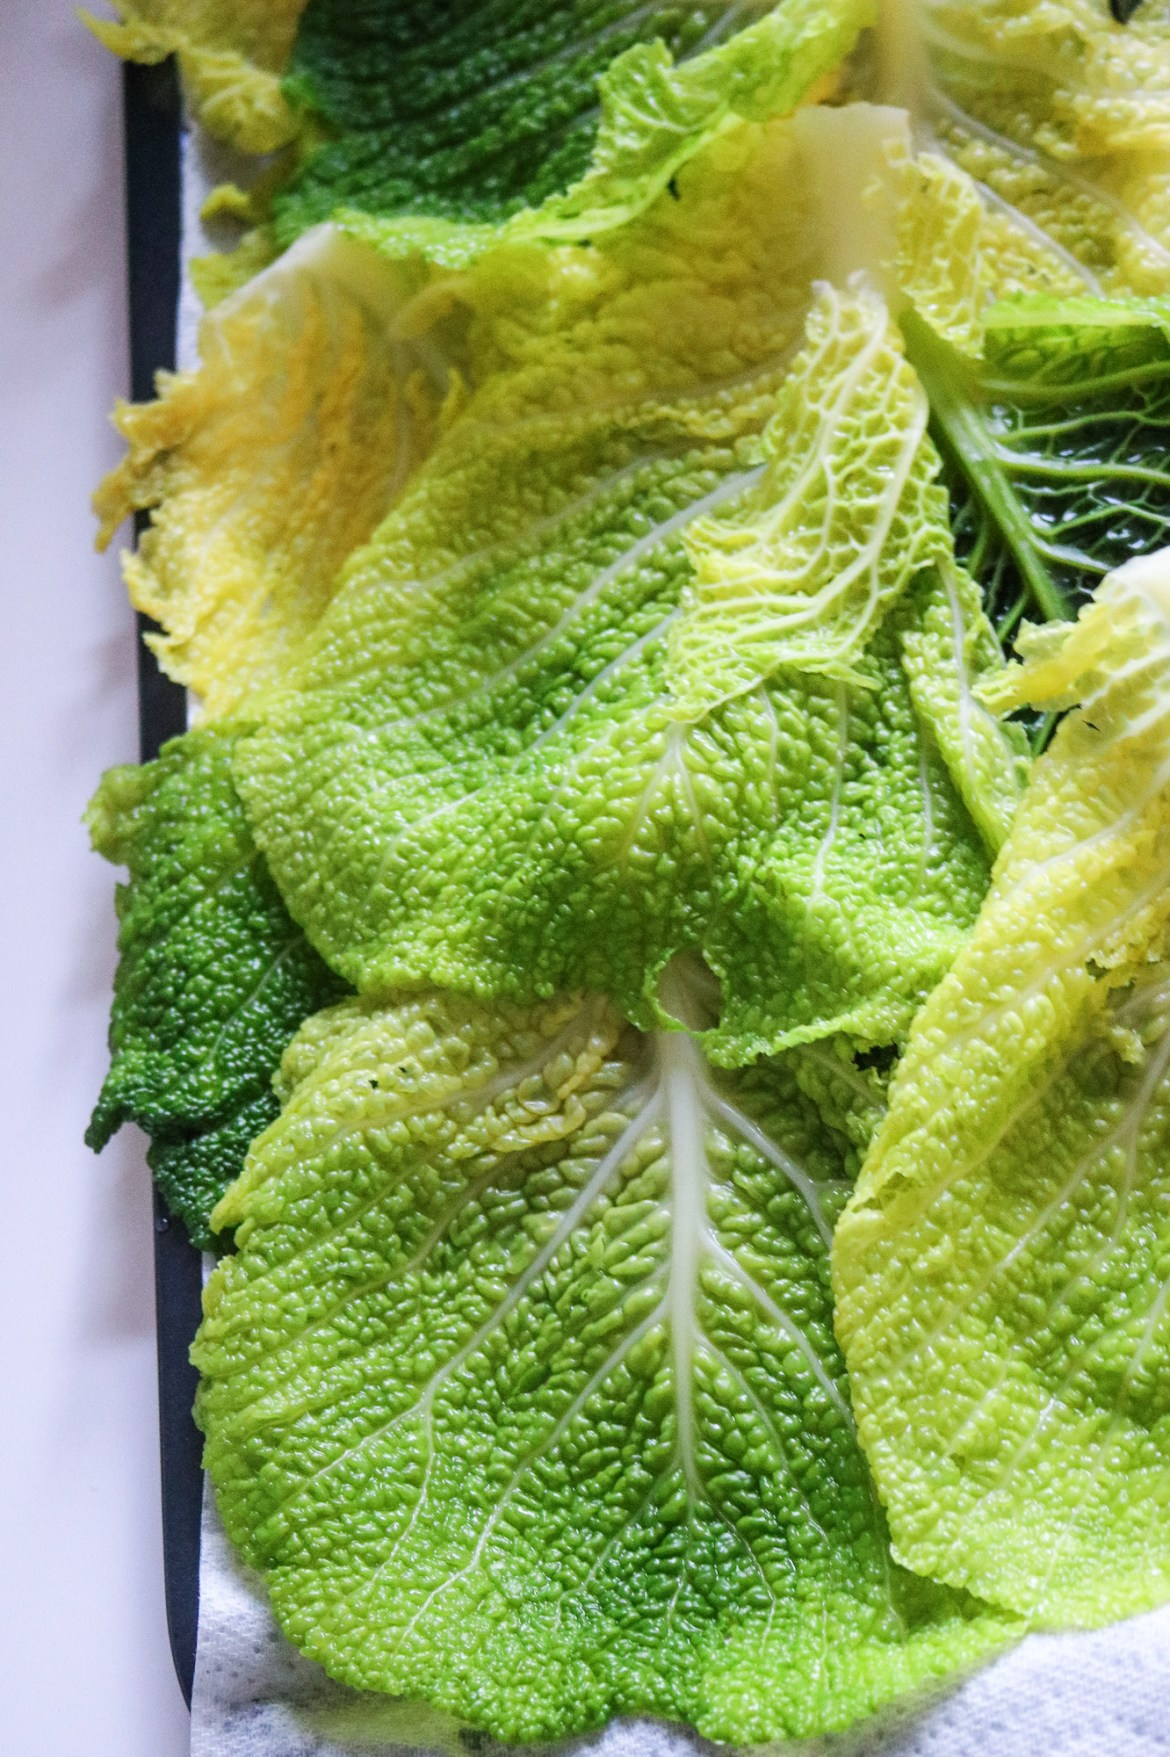 boiled savoy cabbage leaves